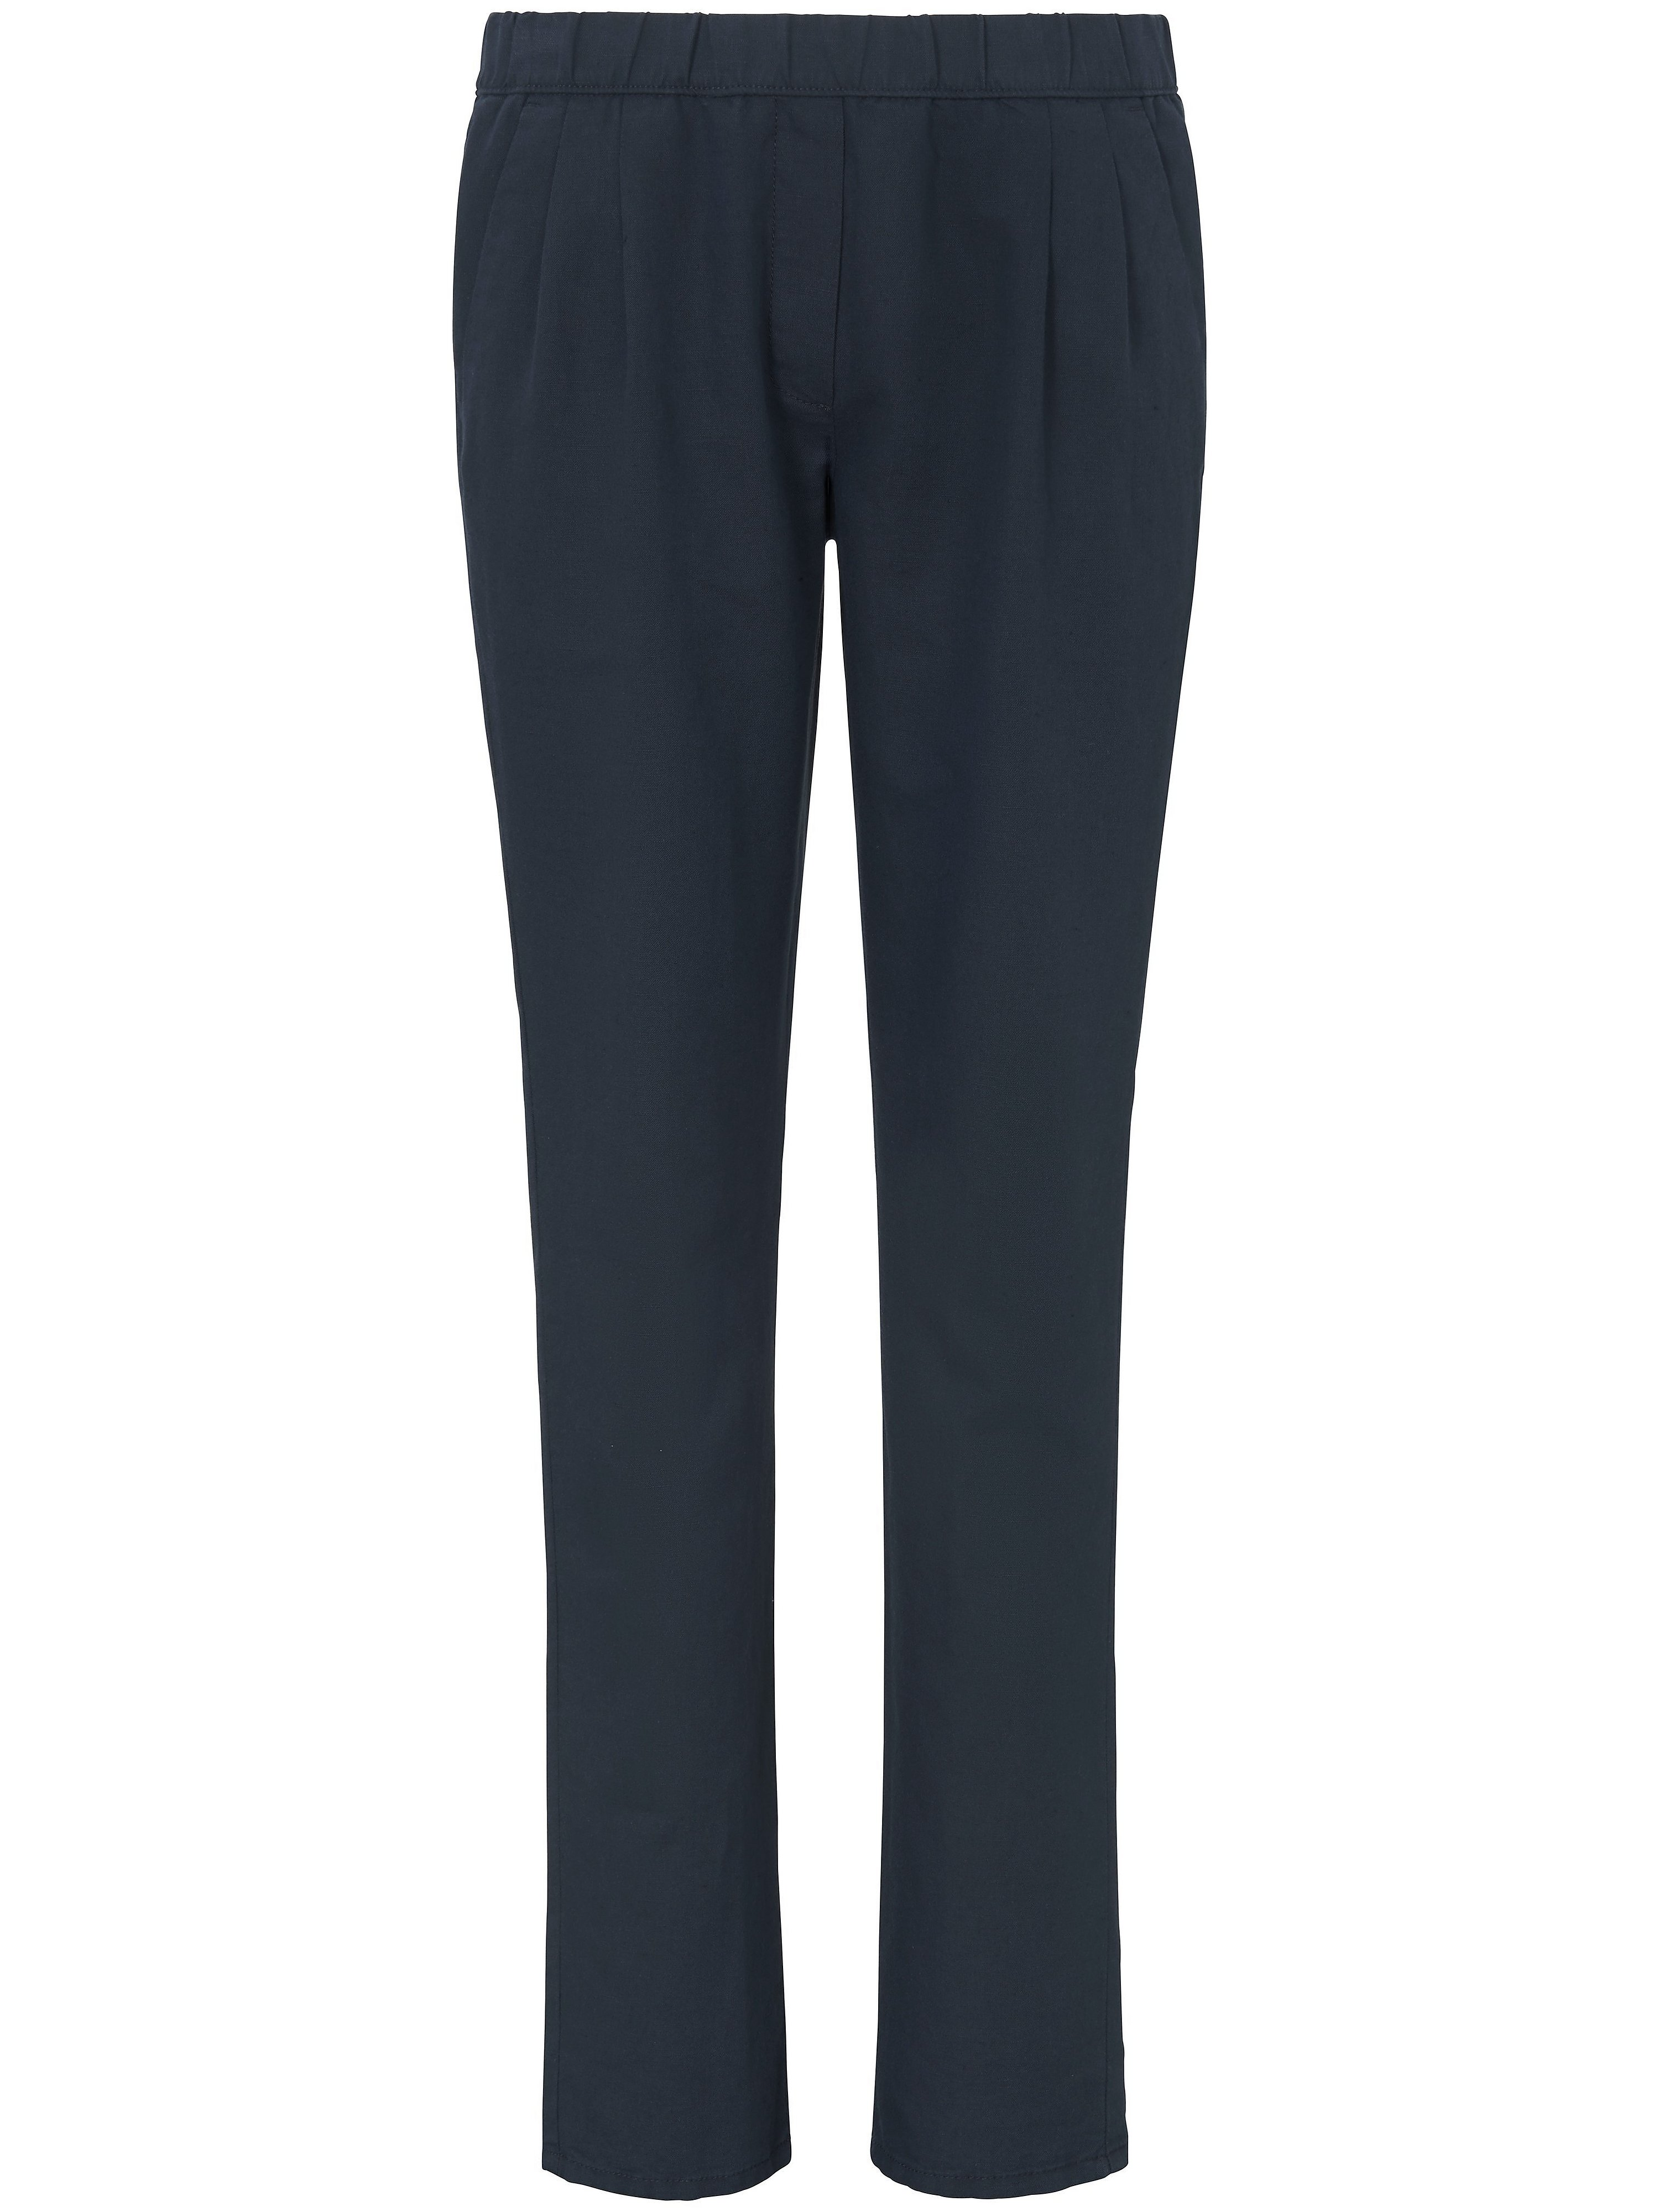 Pleated pull-on trousers Peter Hahn blue